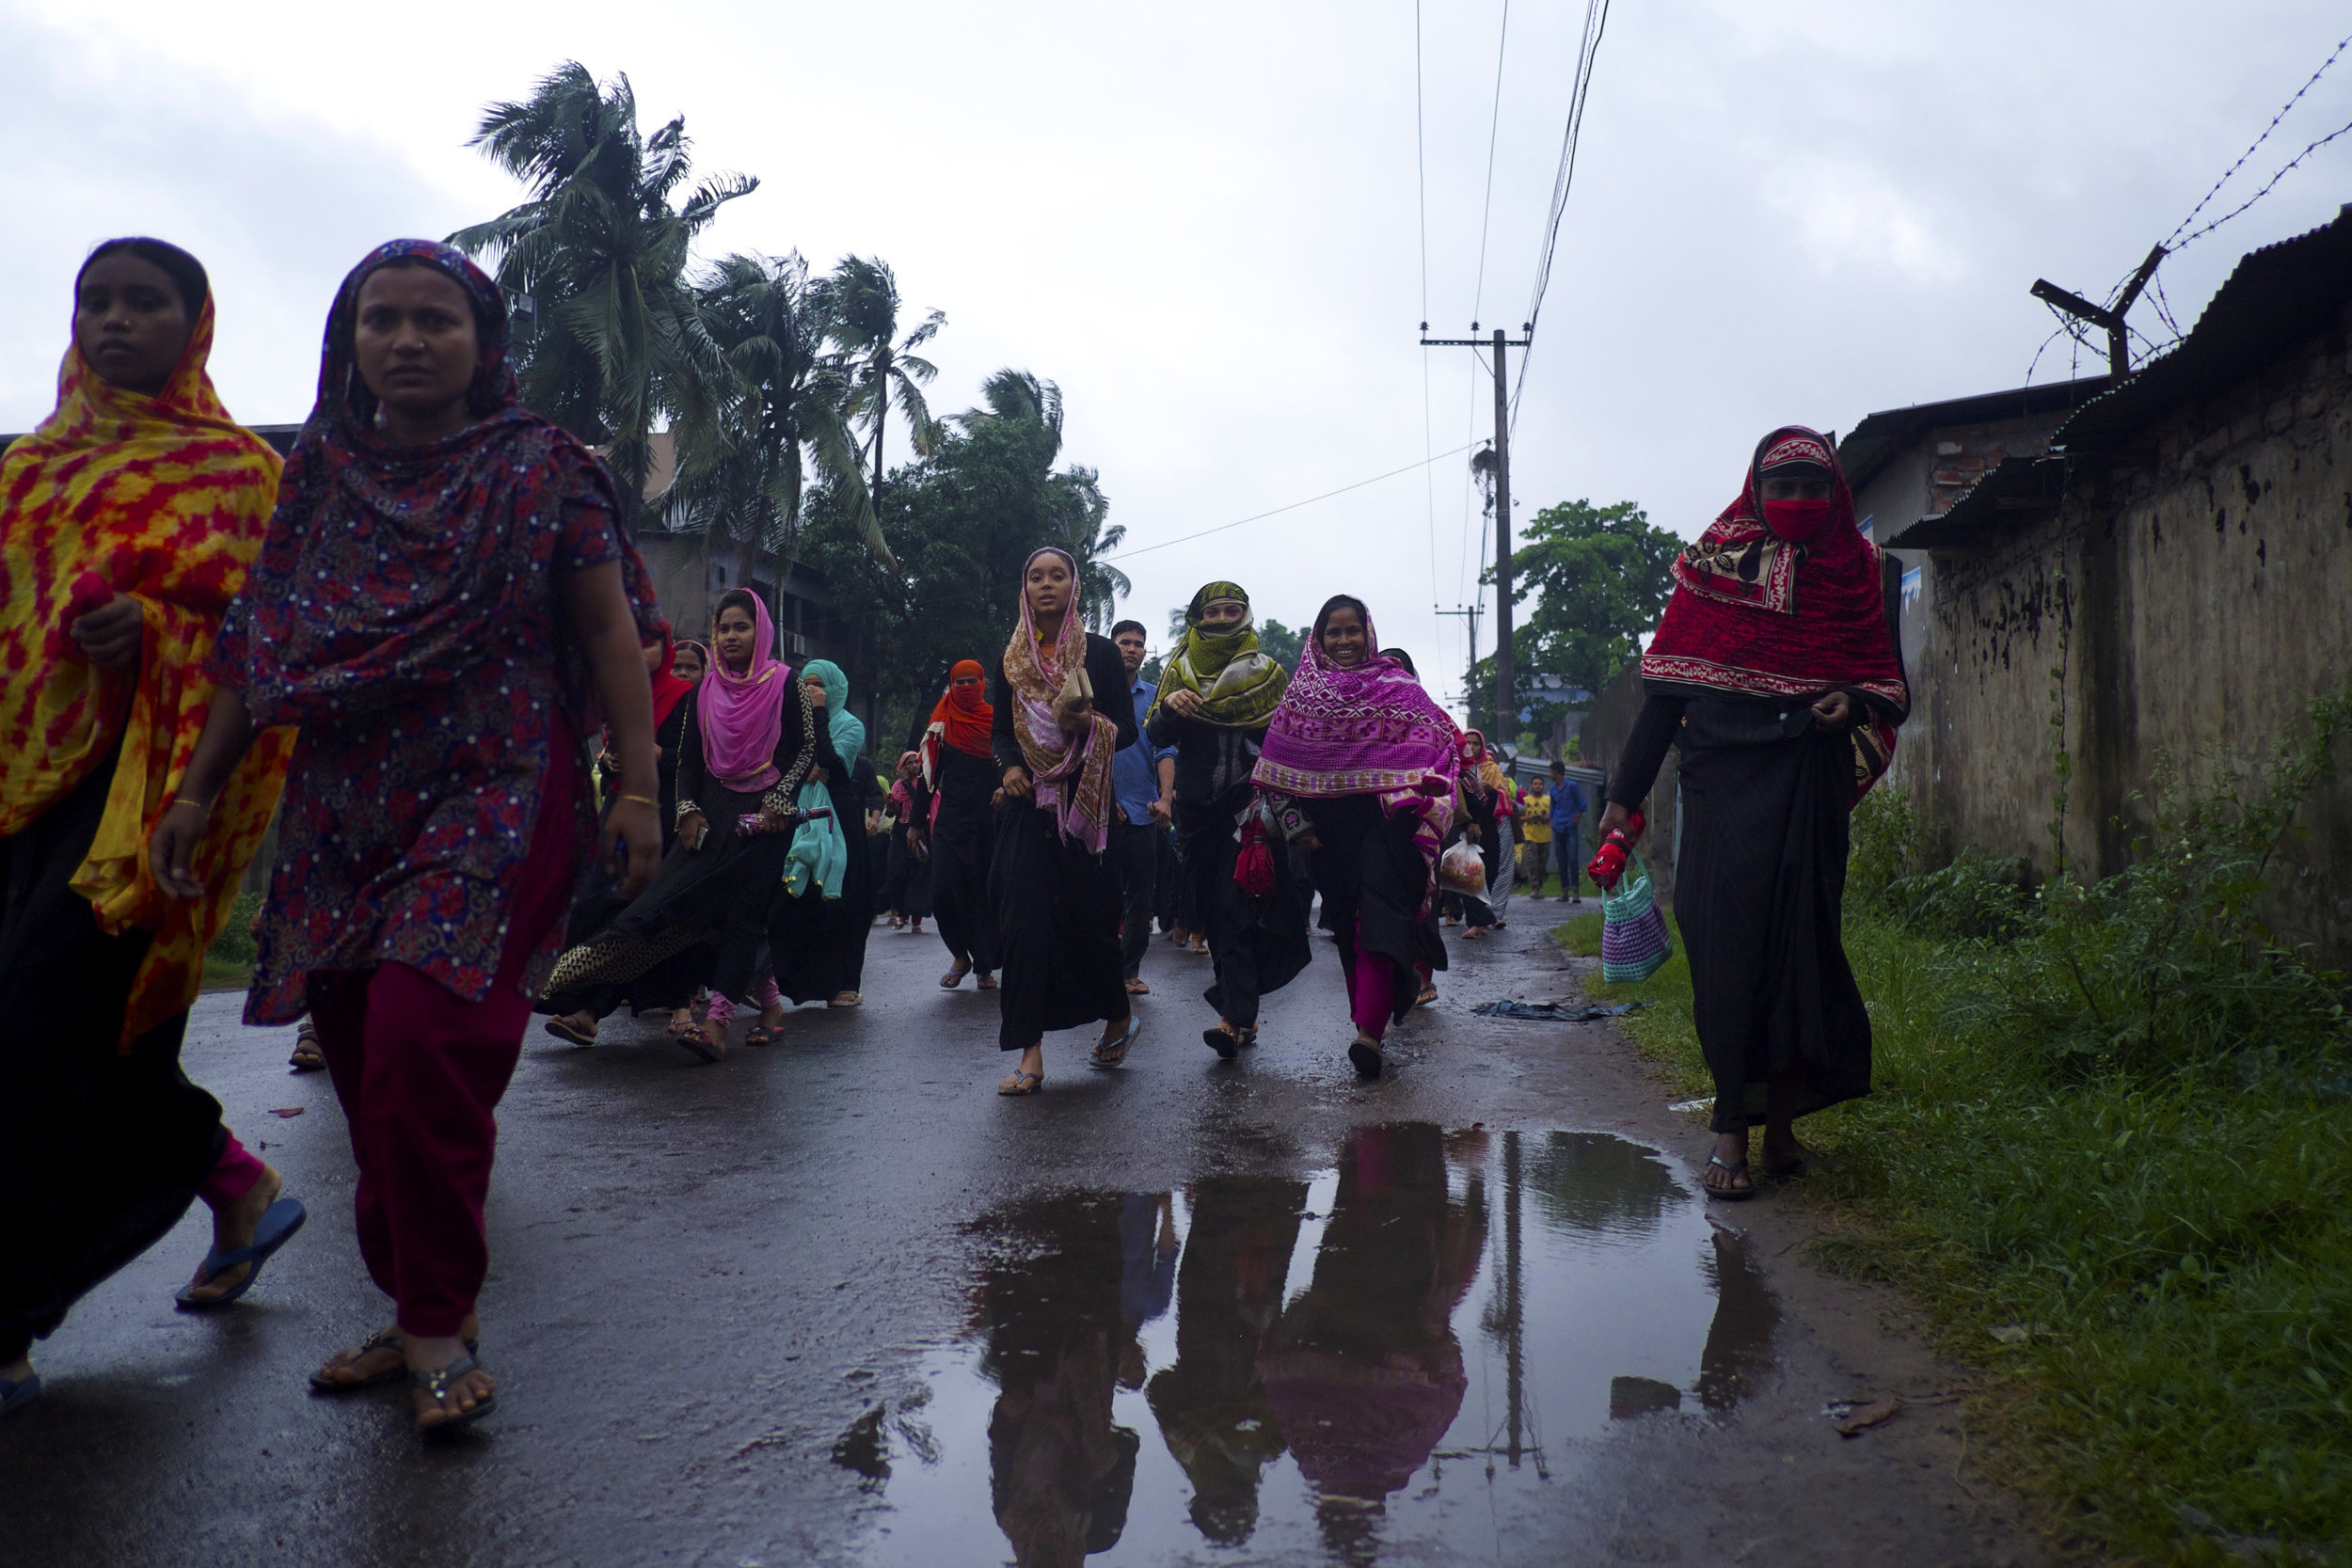 Garment workers in Chittagong, southern Bangladesh, leave their factories at the end of the day. (Credit: Dene-Hern Chen)